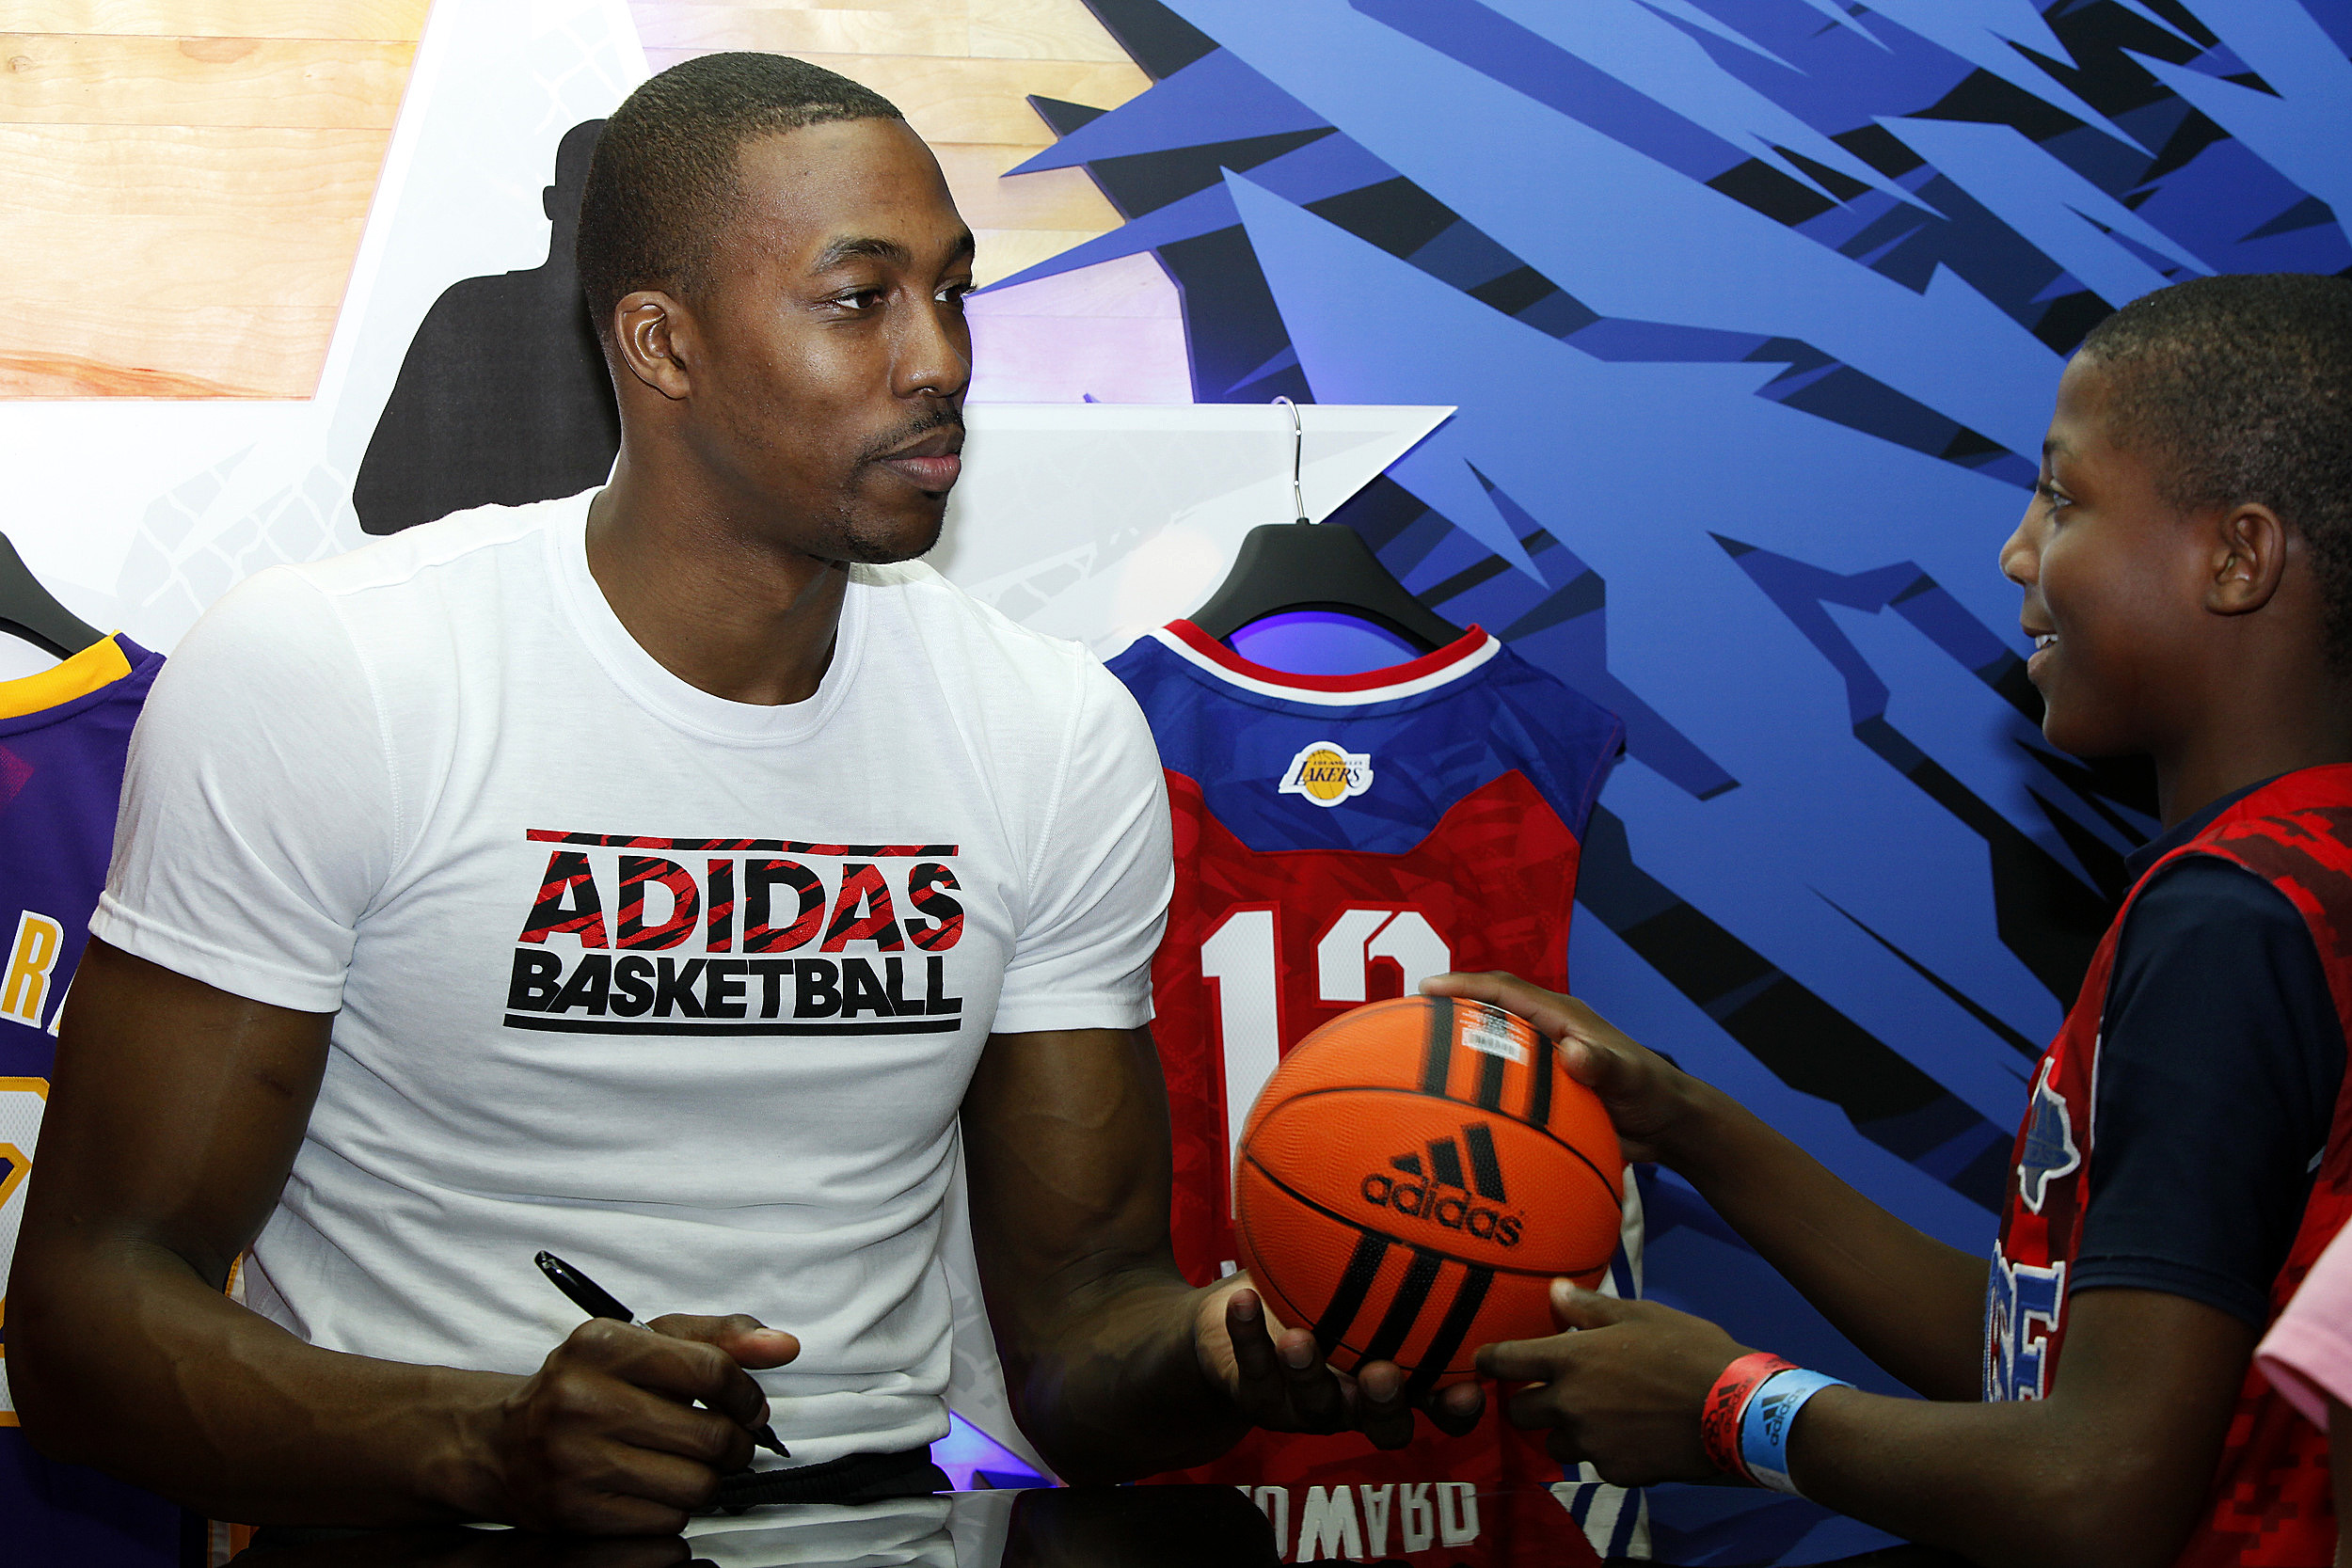 dwight-howard-jrue-holiday-ricky-rubio-and-others-celebrate-nba-all-star-weekend-2